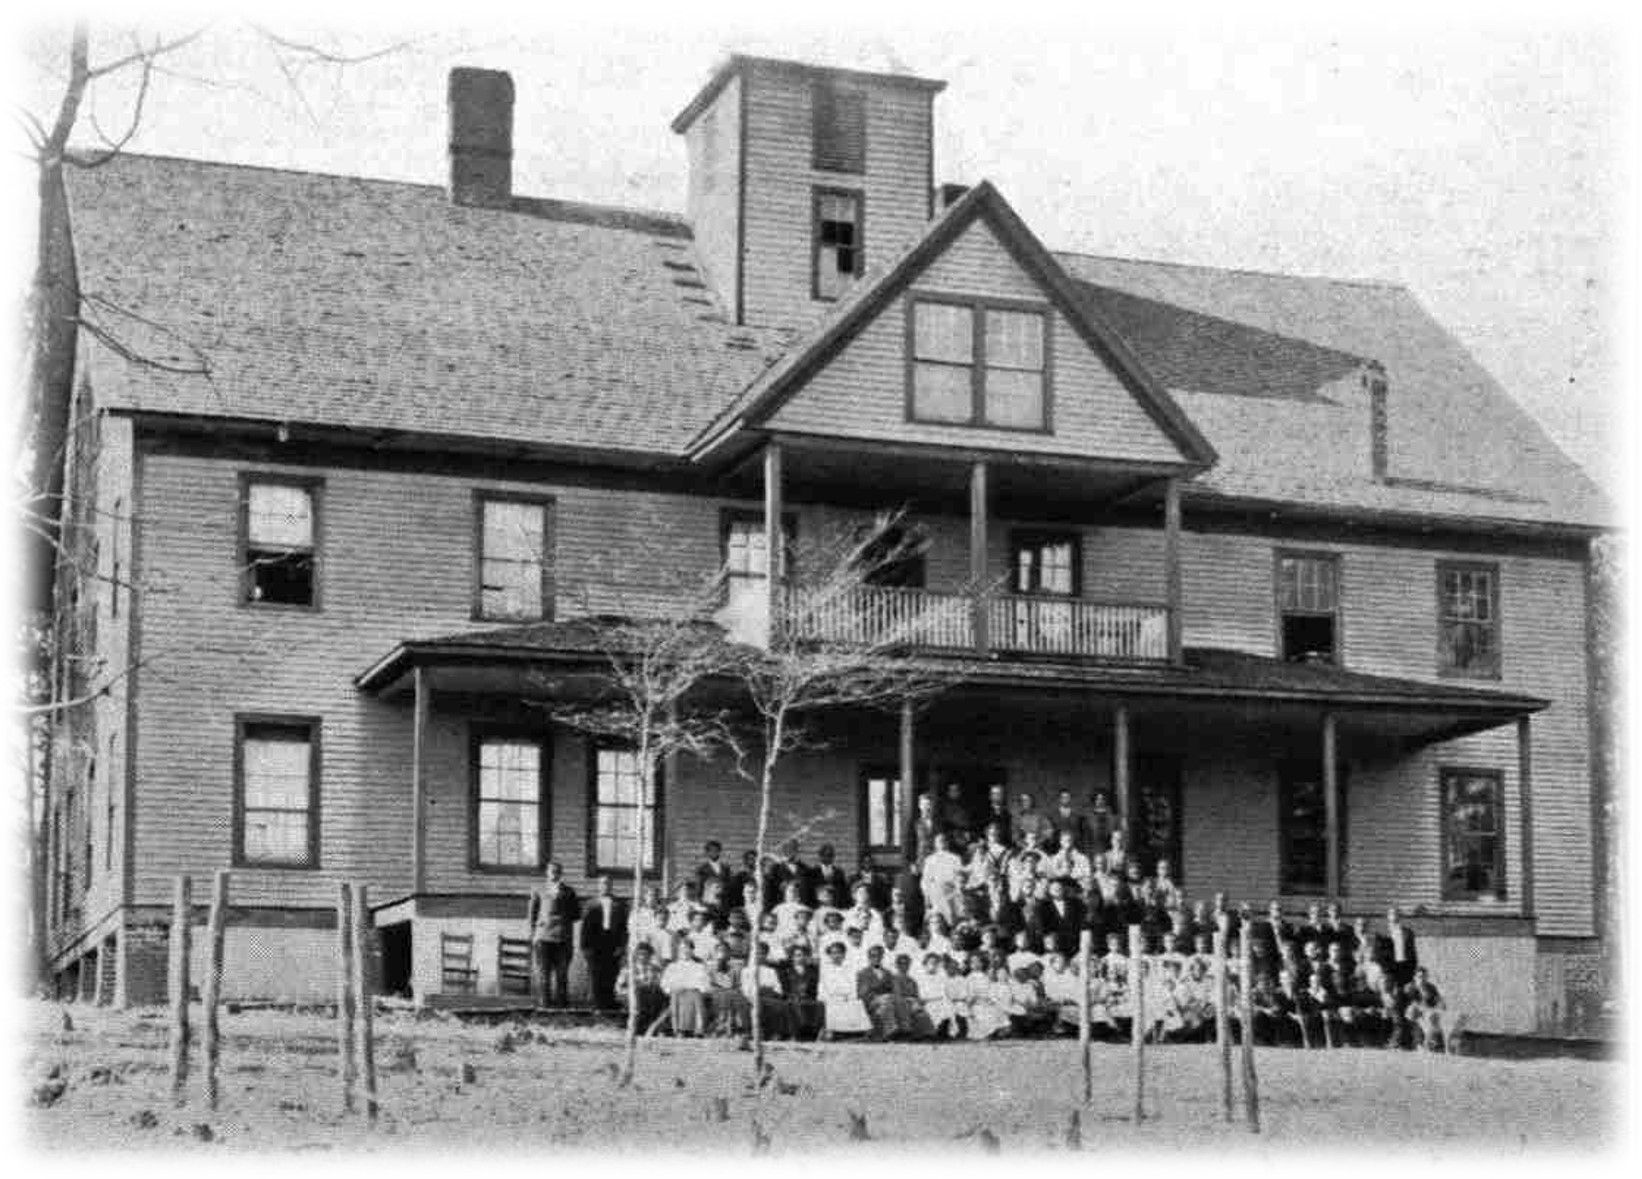 Property, House, Photograph, Building